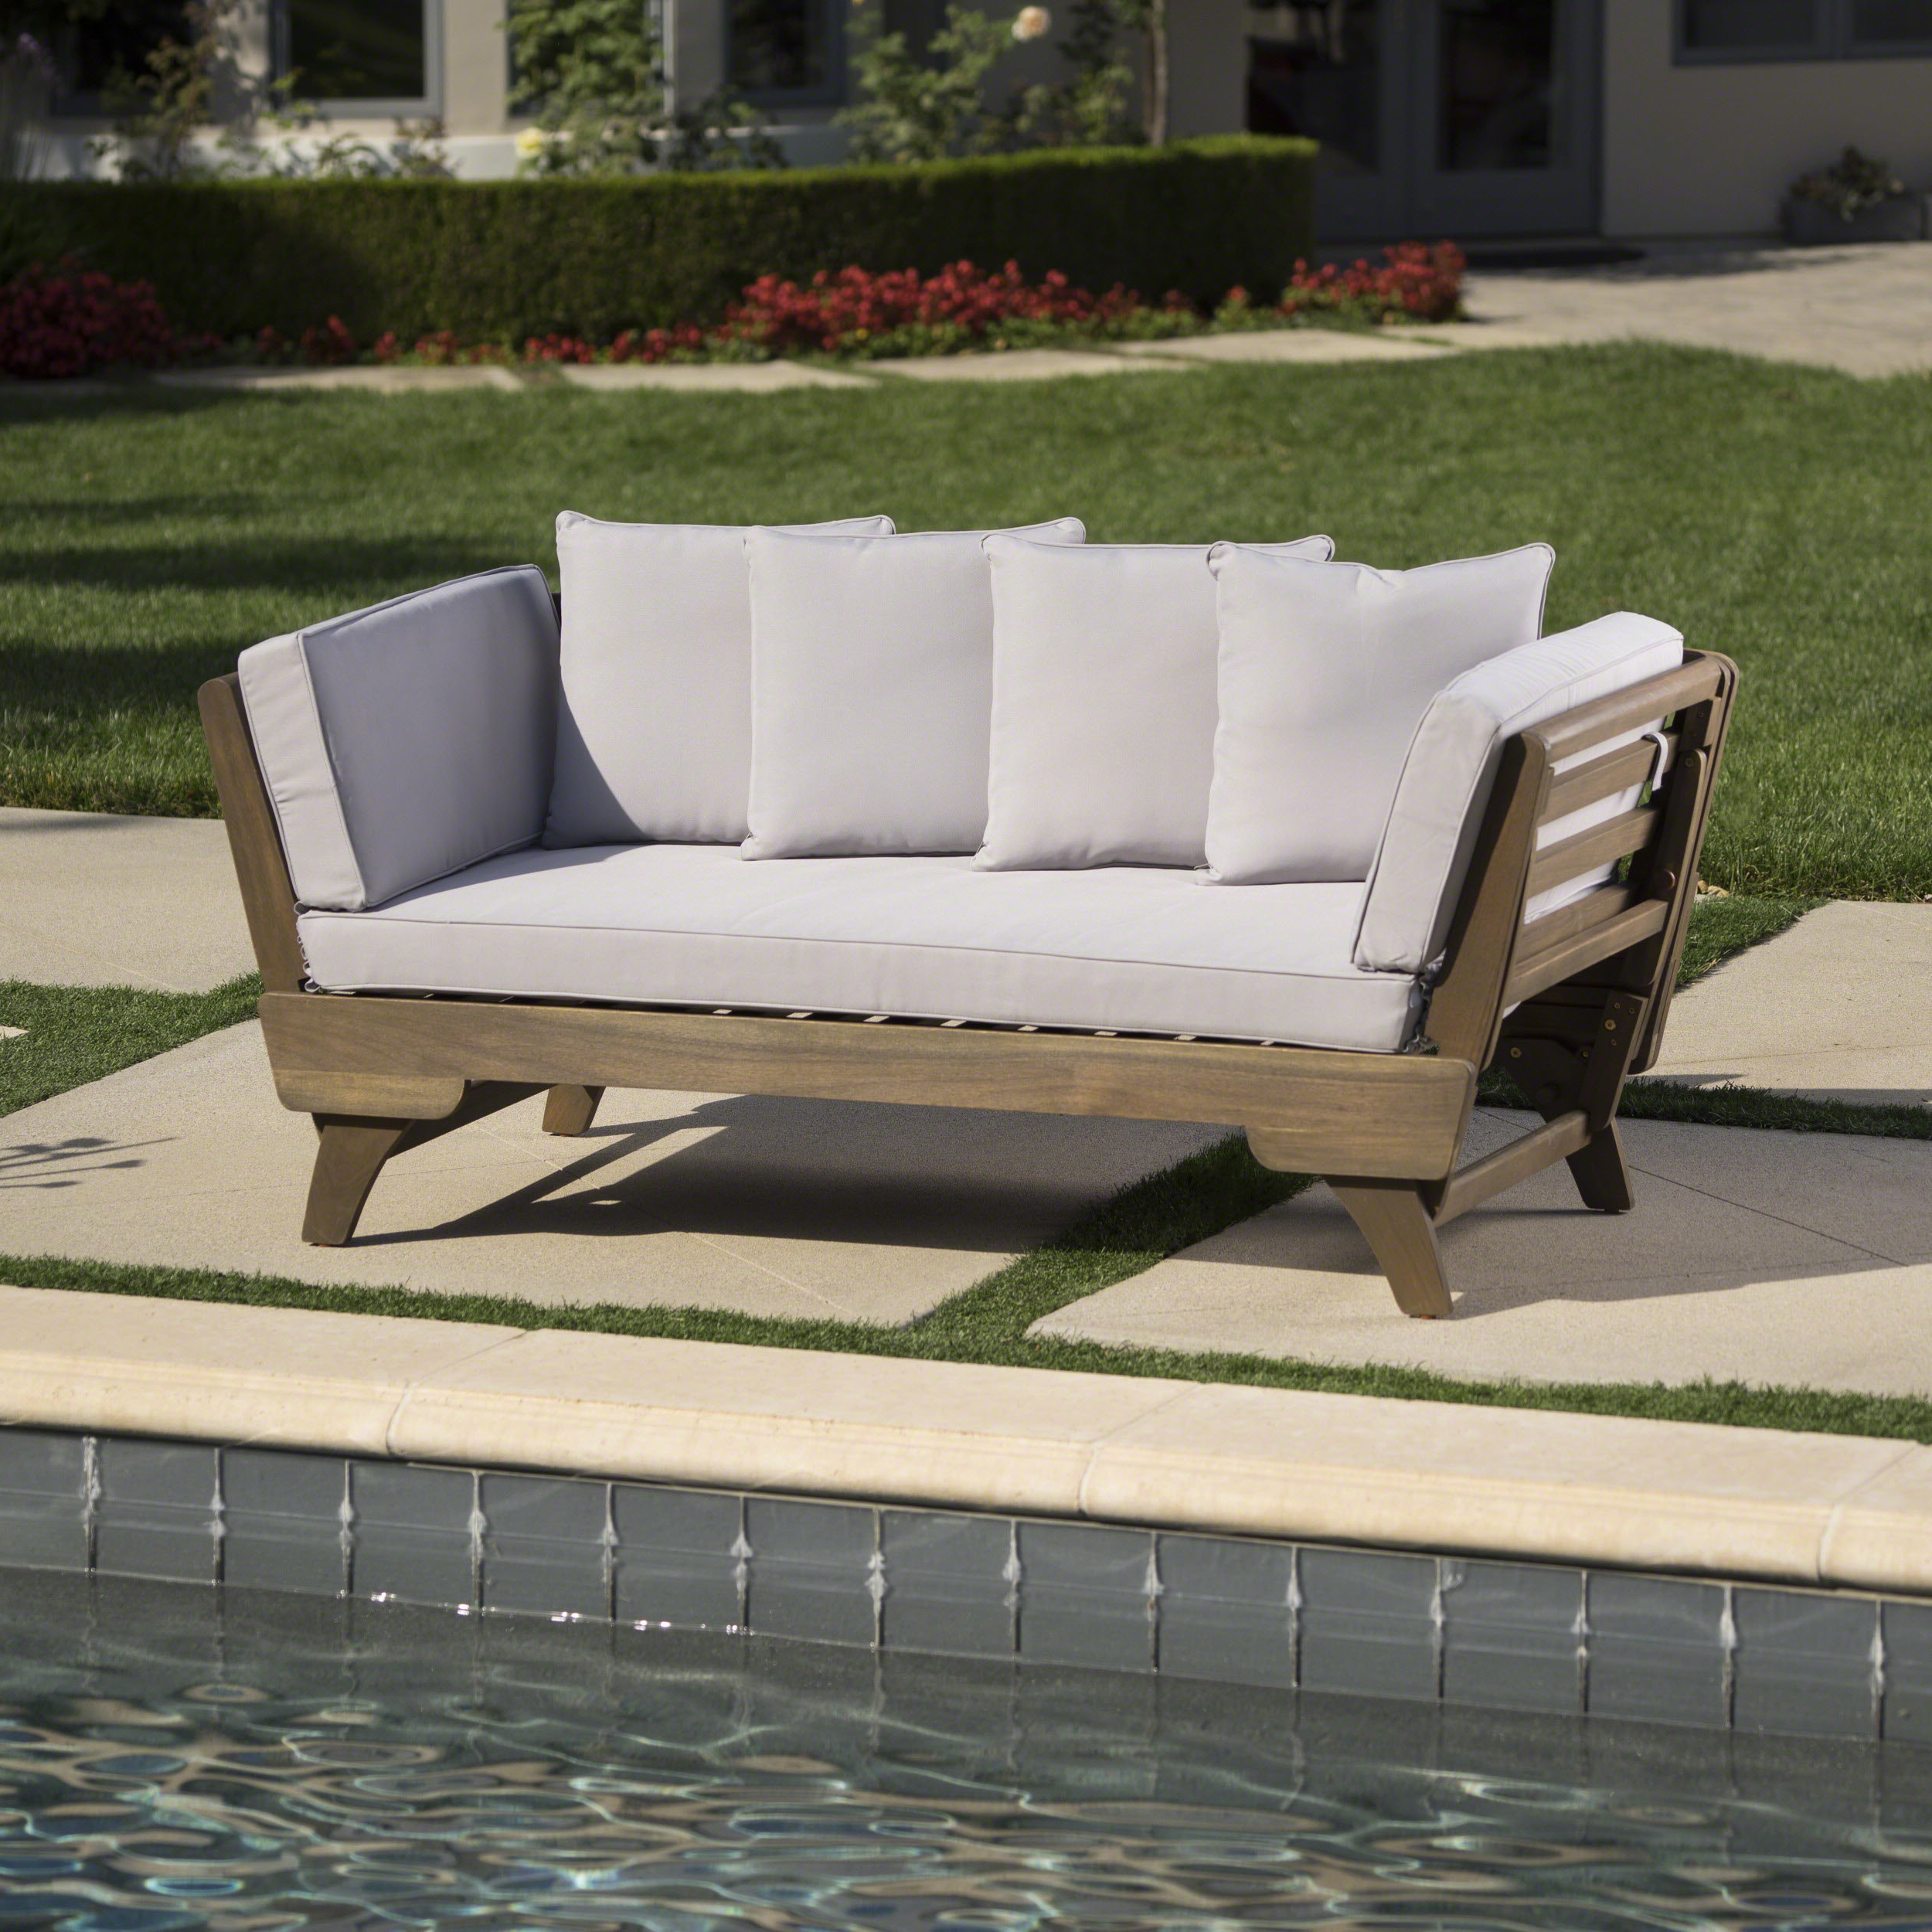 Union Rustic Ellanti Teak Patio Daybed With Cushions For Well Liked Grosvenor Bamboo Patio Daybeds With Cushions (View 16 of 20)